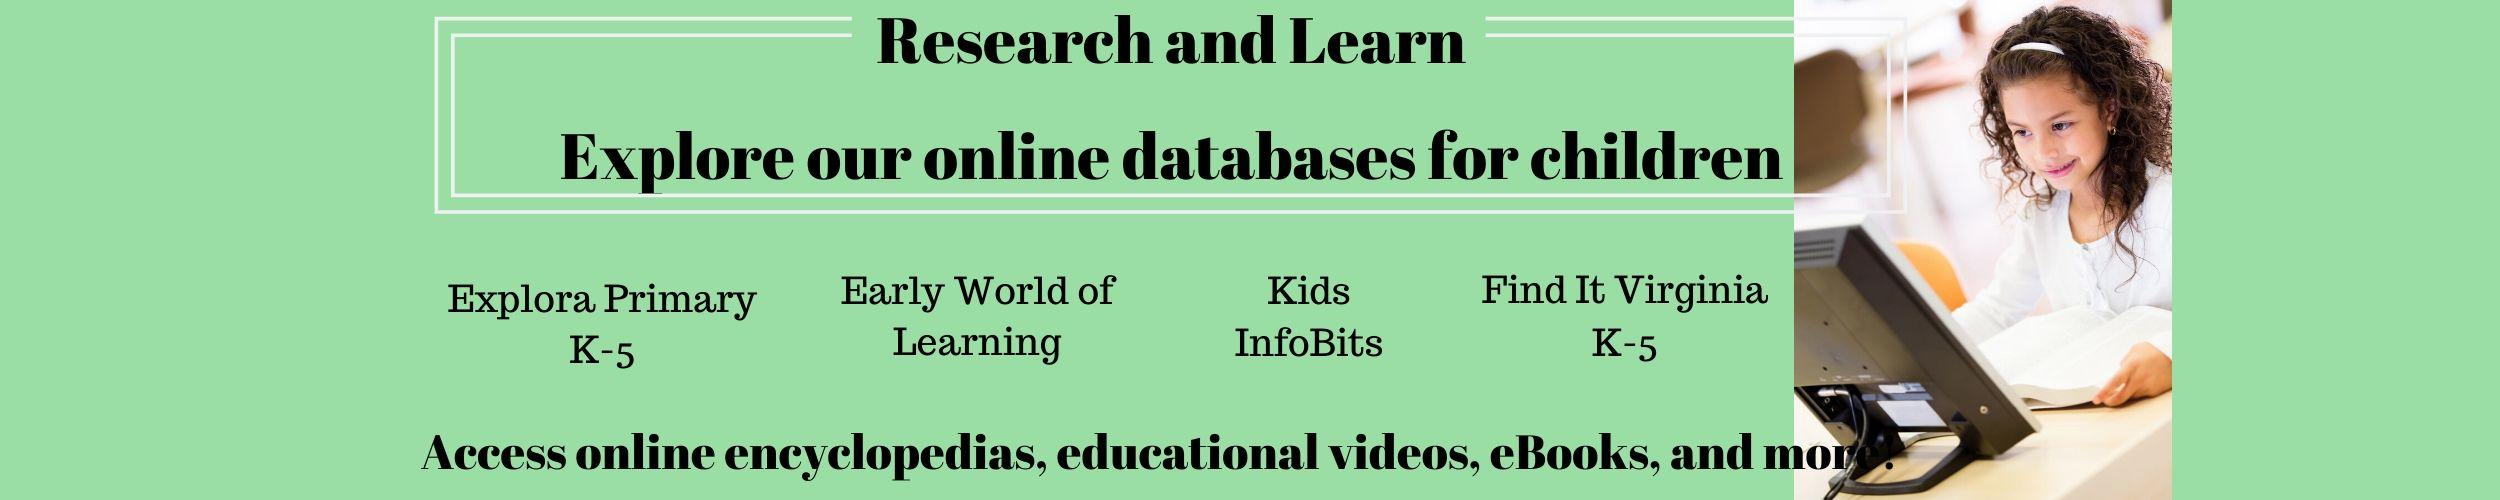 research and learn online databases for kids